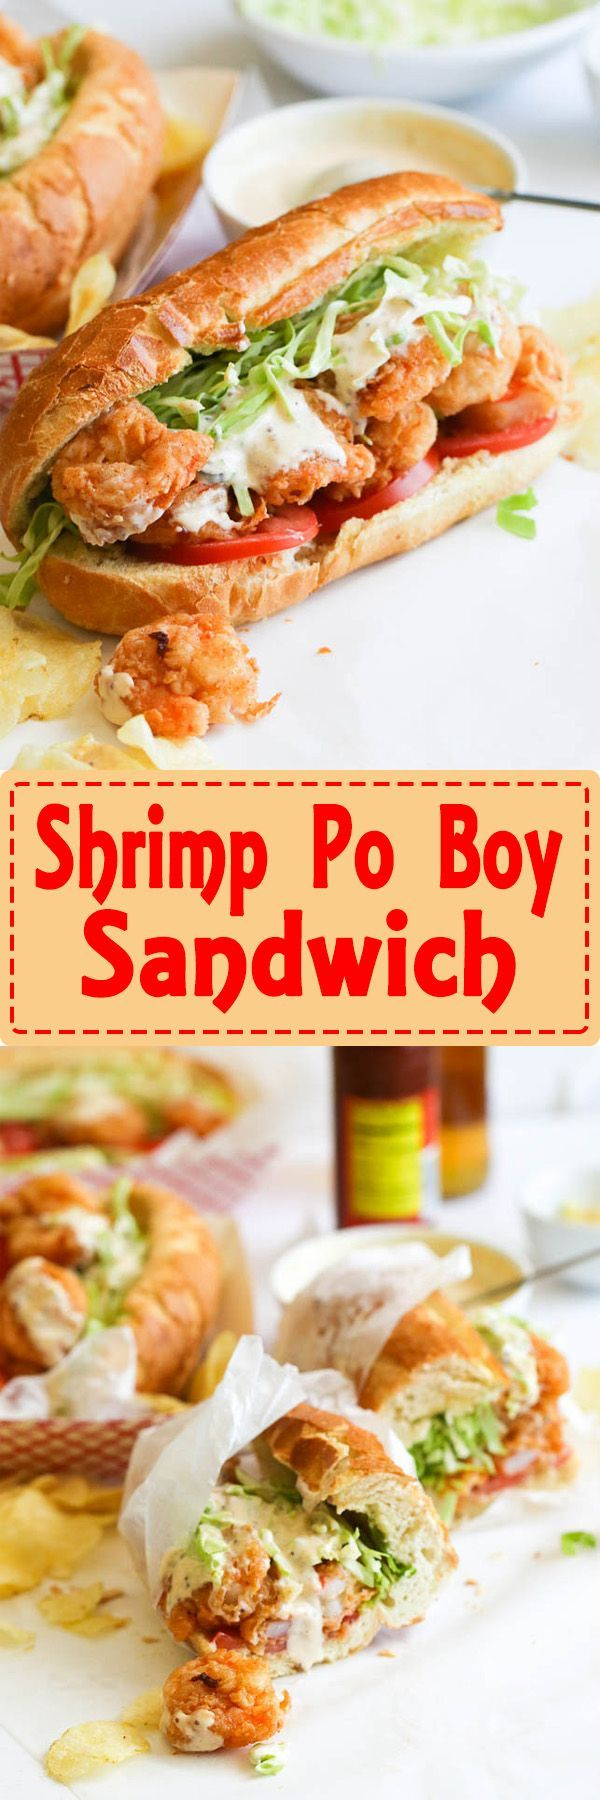 Shrimp po 'boy Sandwich